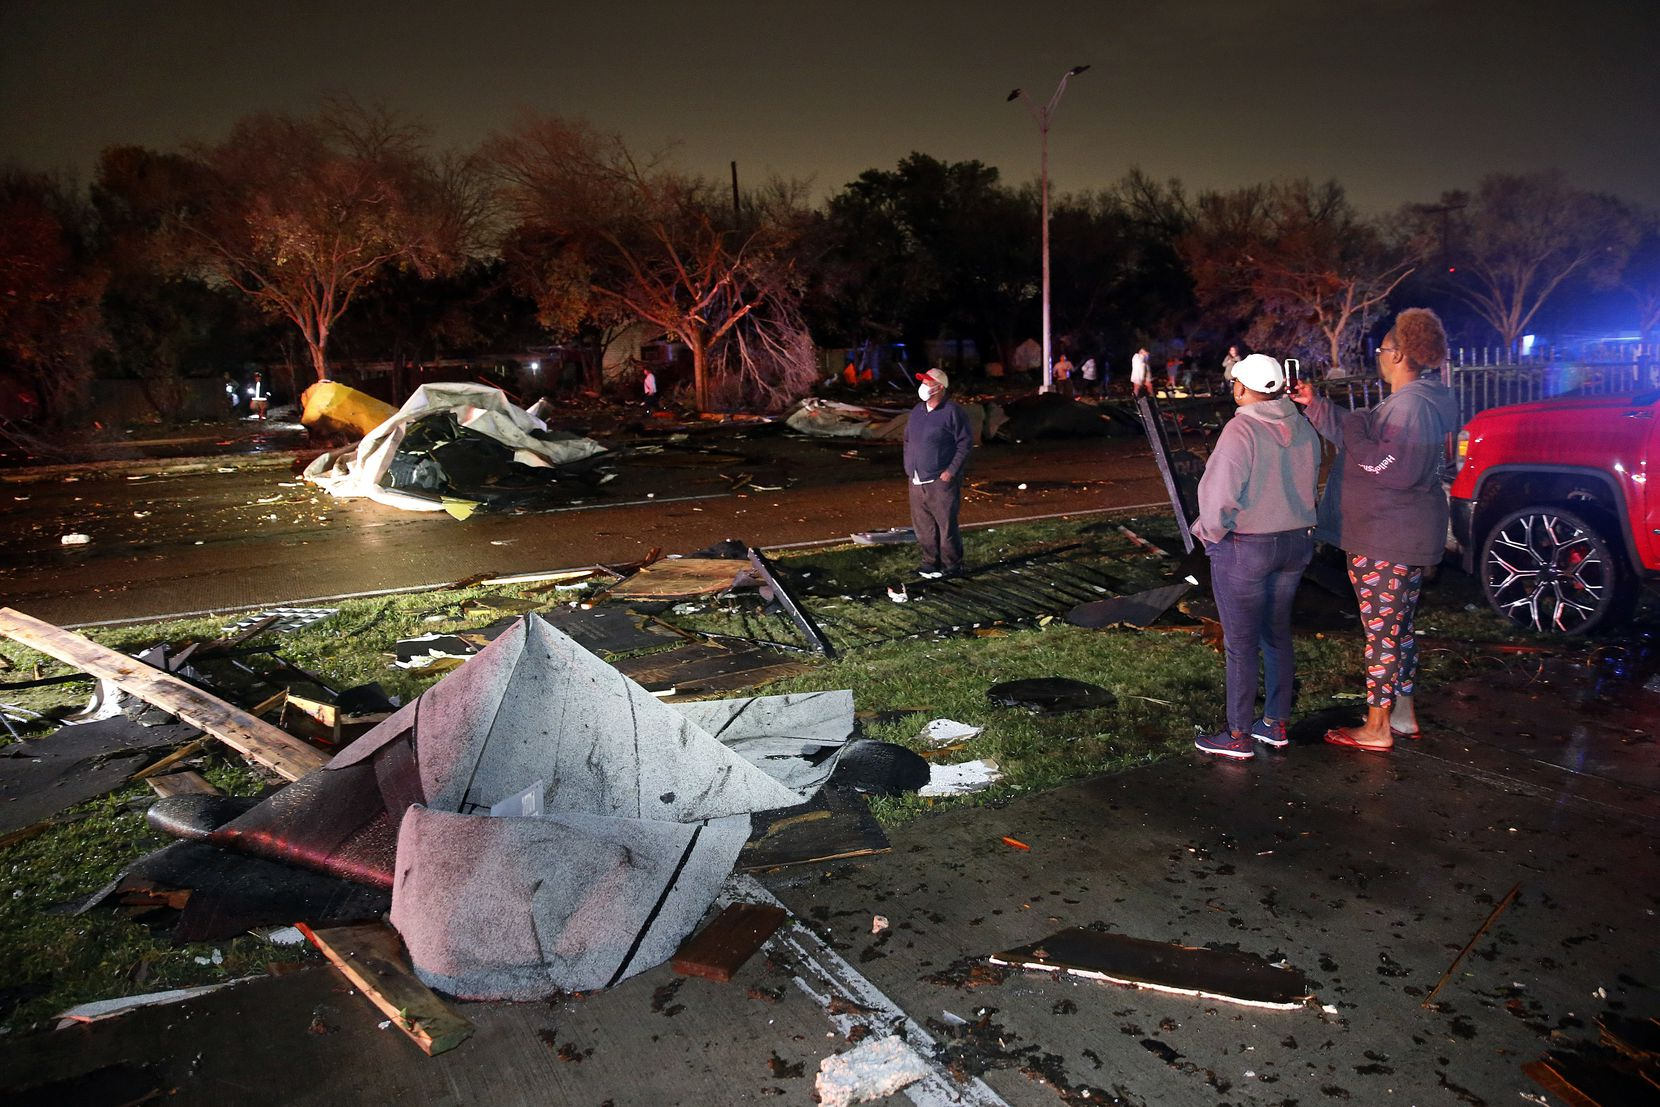 People inspect roofs of The Mirage Apartments that tore off and landed on Pioneer Parkway in Arlington following a tornado-warned storm, Tuesday night, November 24, 2020. (Tom Fox/The Dallas Morning News)